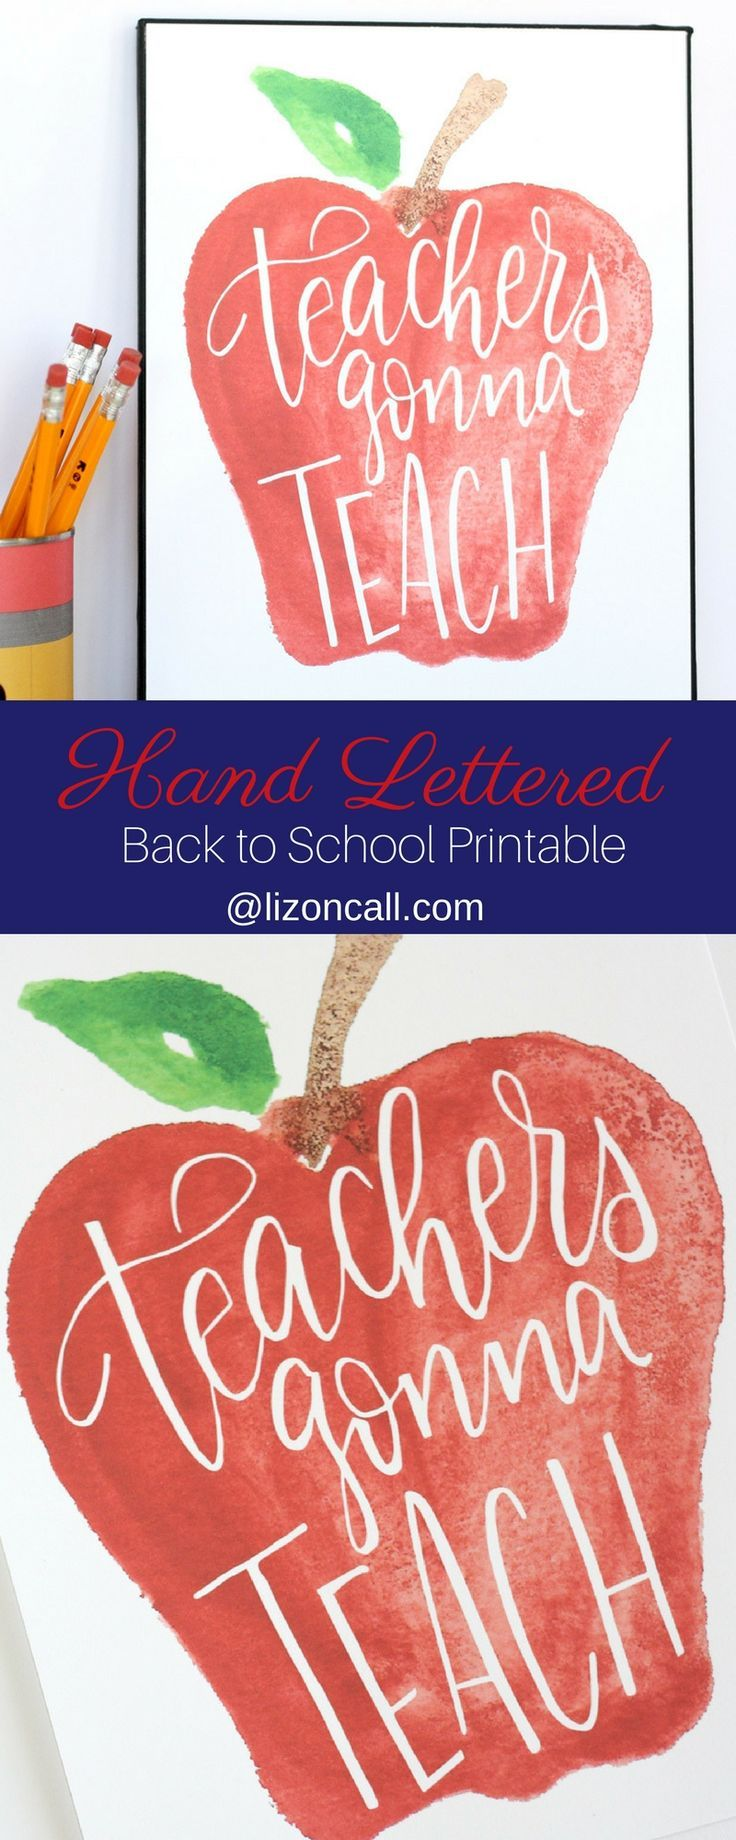 This sweet hand lettered and watercolored teachers gonna teach printable would m...